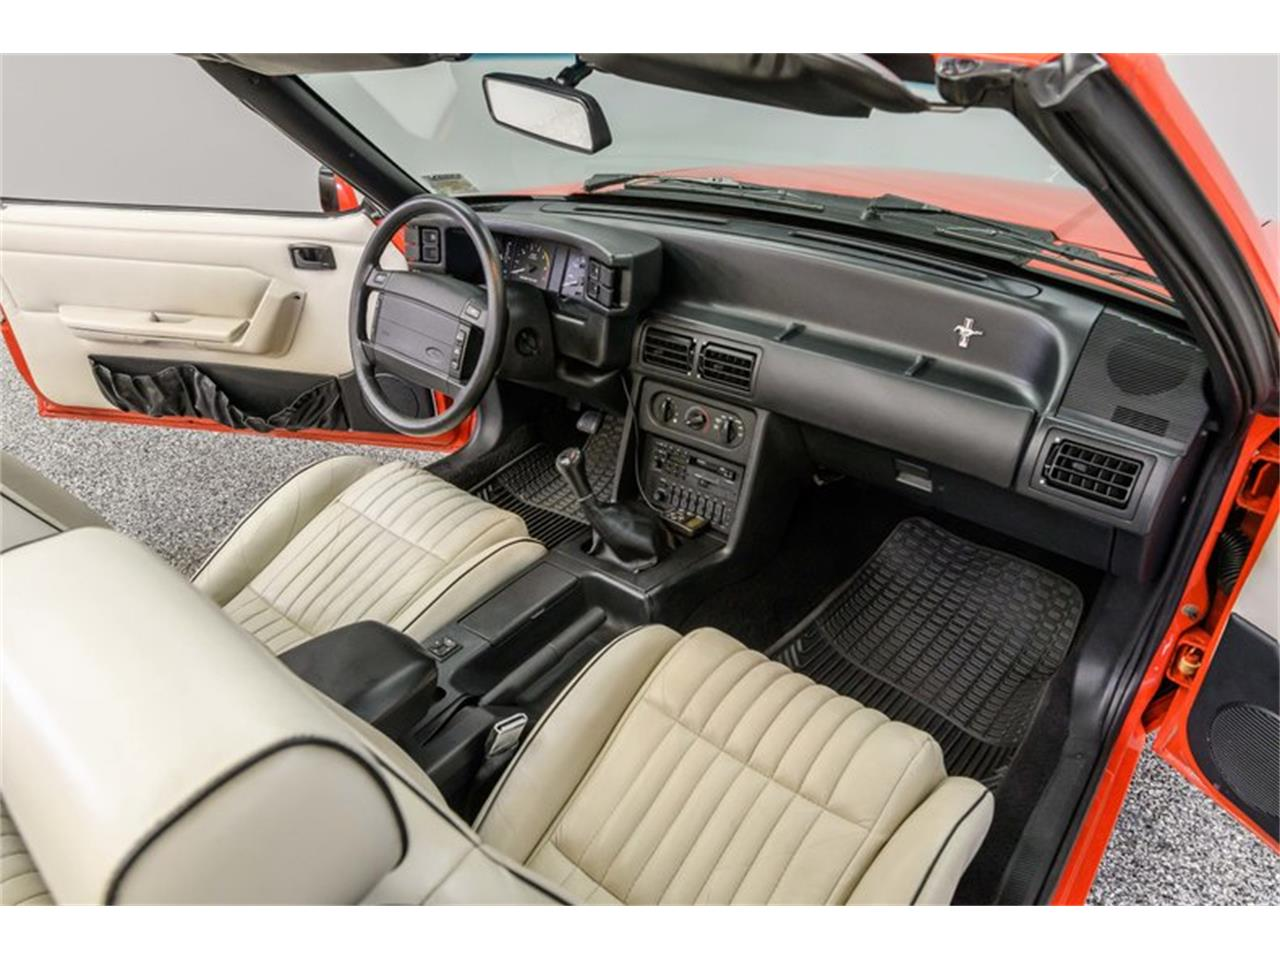 Large Picture of 1992 Mustang located in North Carolina - $21,995.00 - Q56V